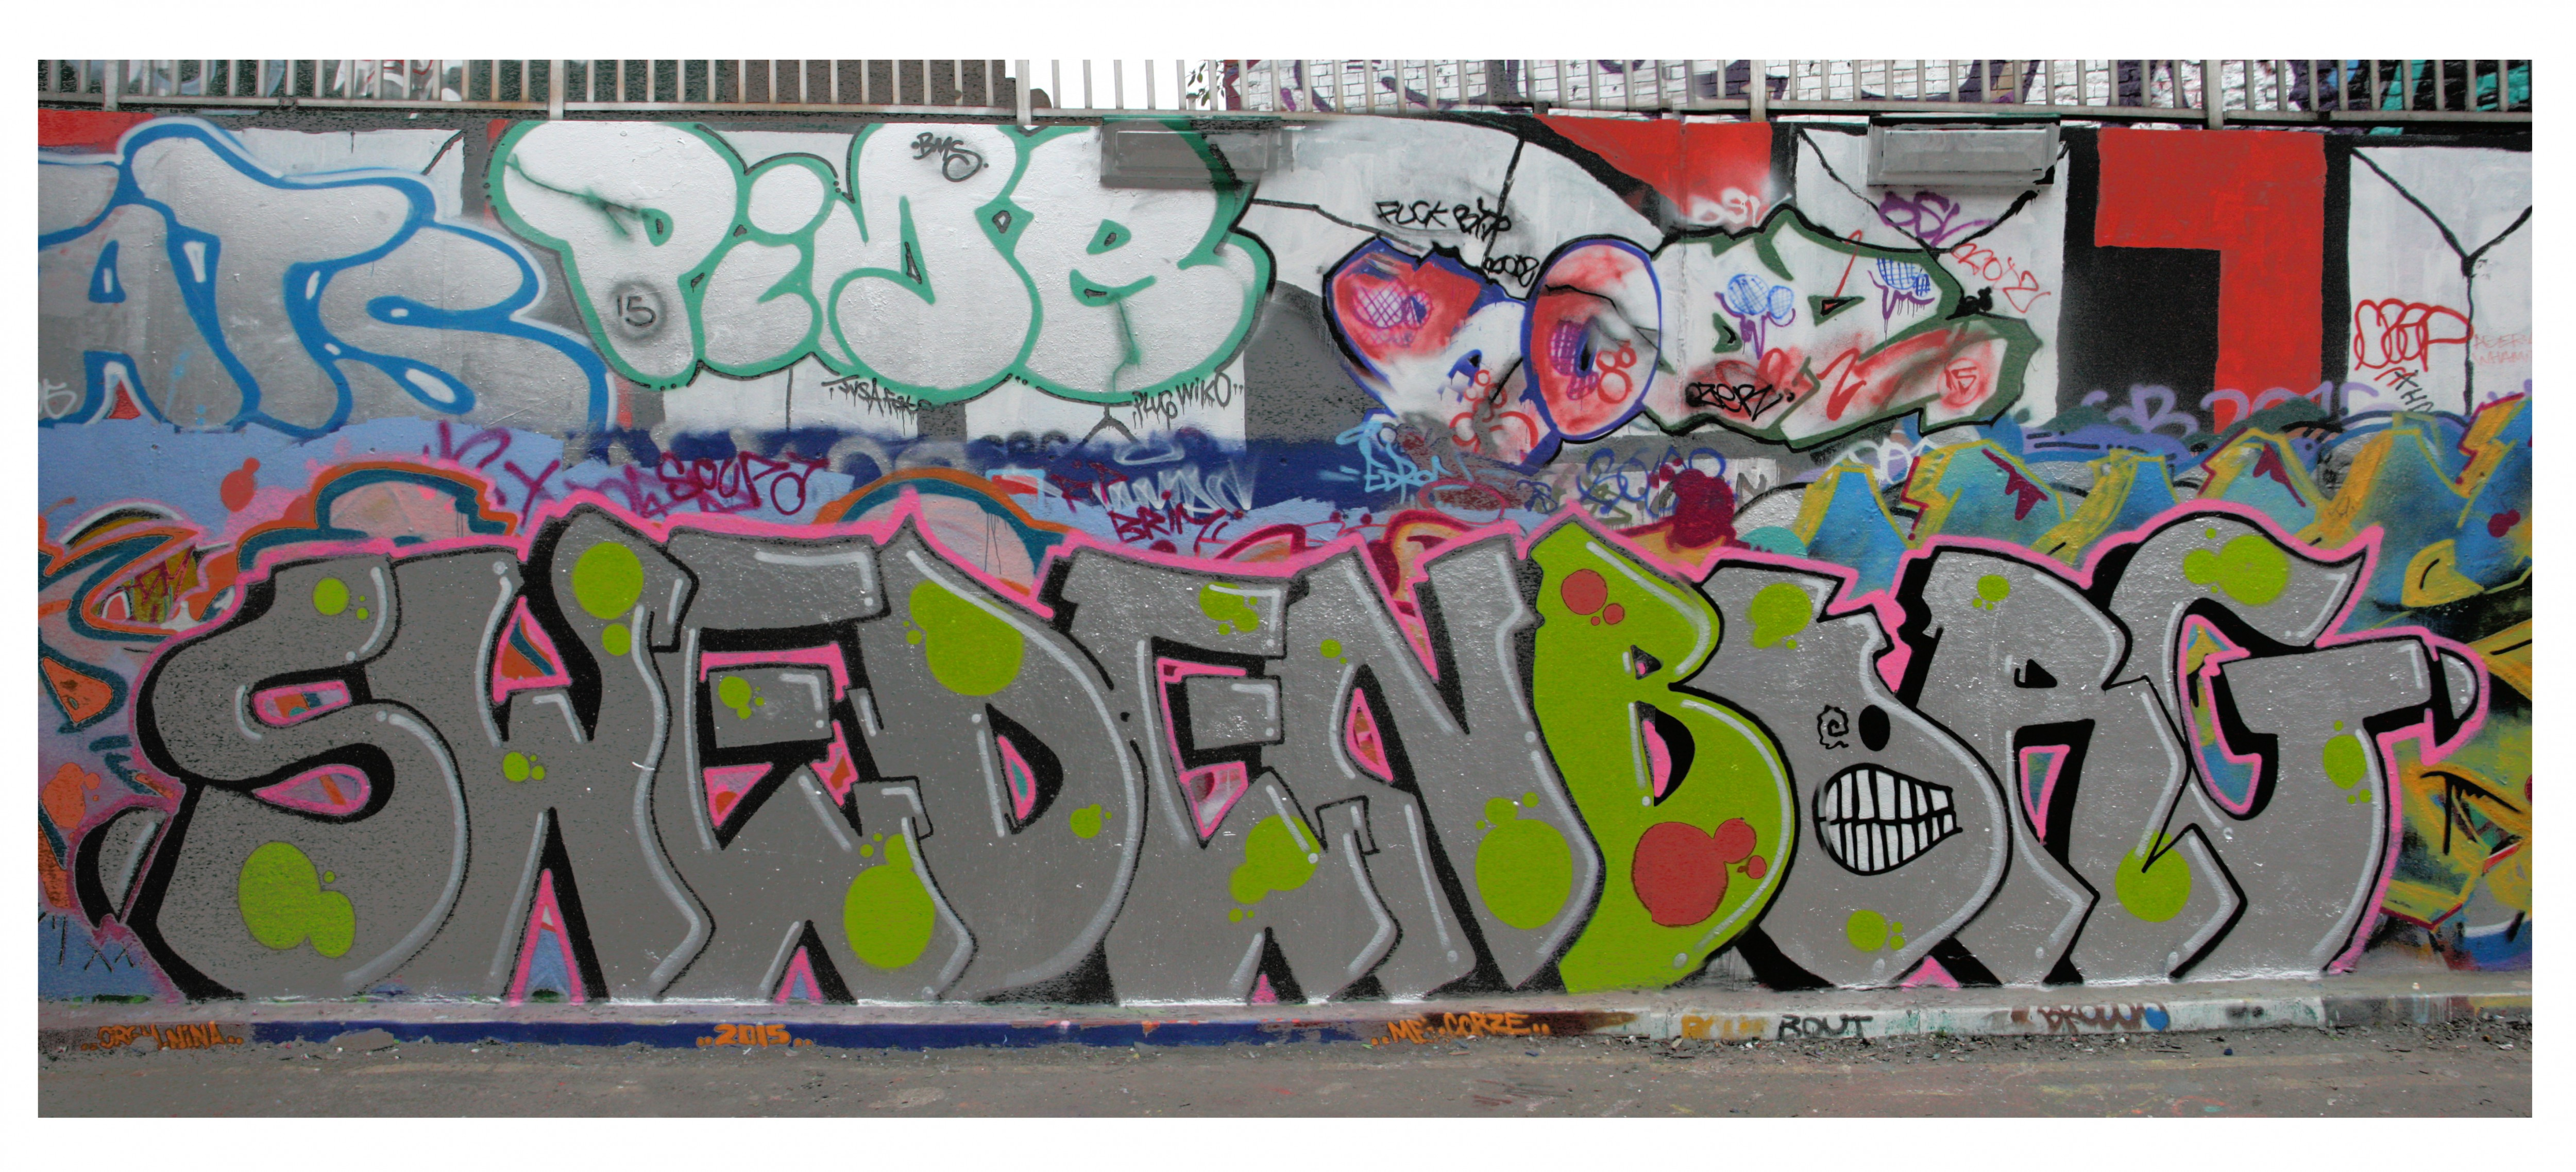 graffiti and their biggest star essay Now deadly because break dancing and graffiti has gone mainly underground the words 'rap' and 'hip hop' have been used they've essay evolved onto new levels.